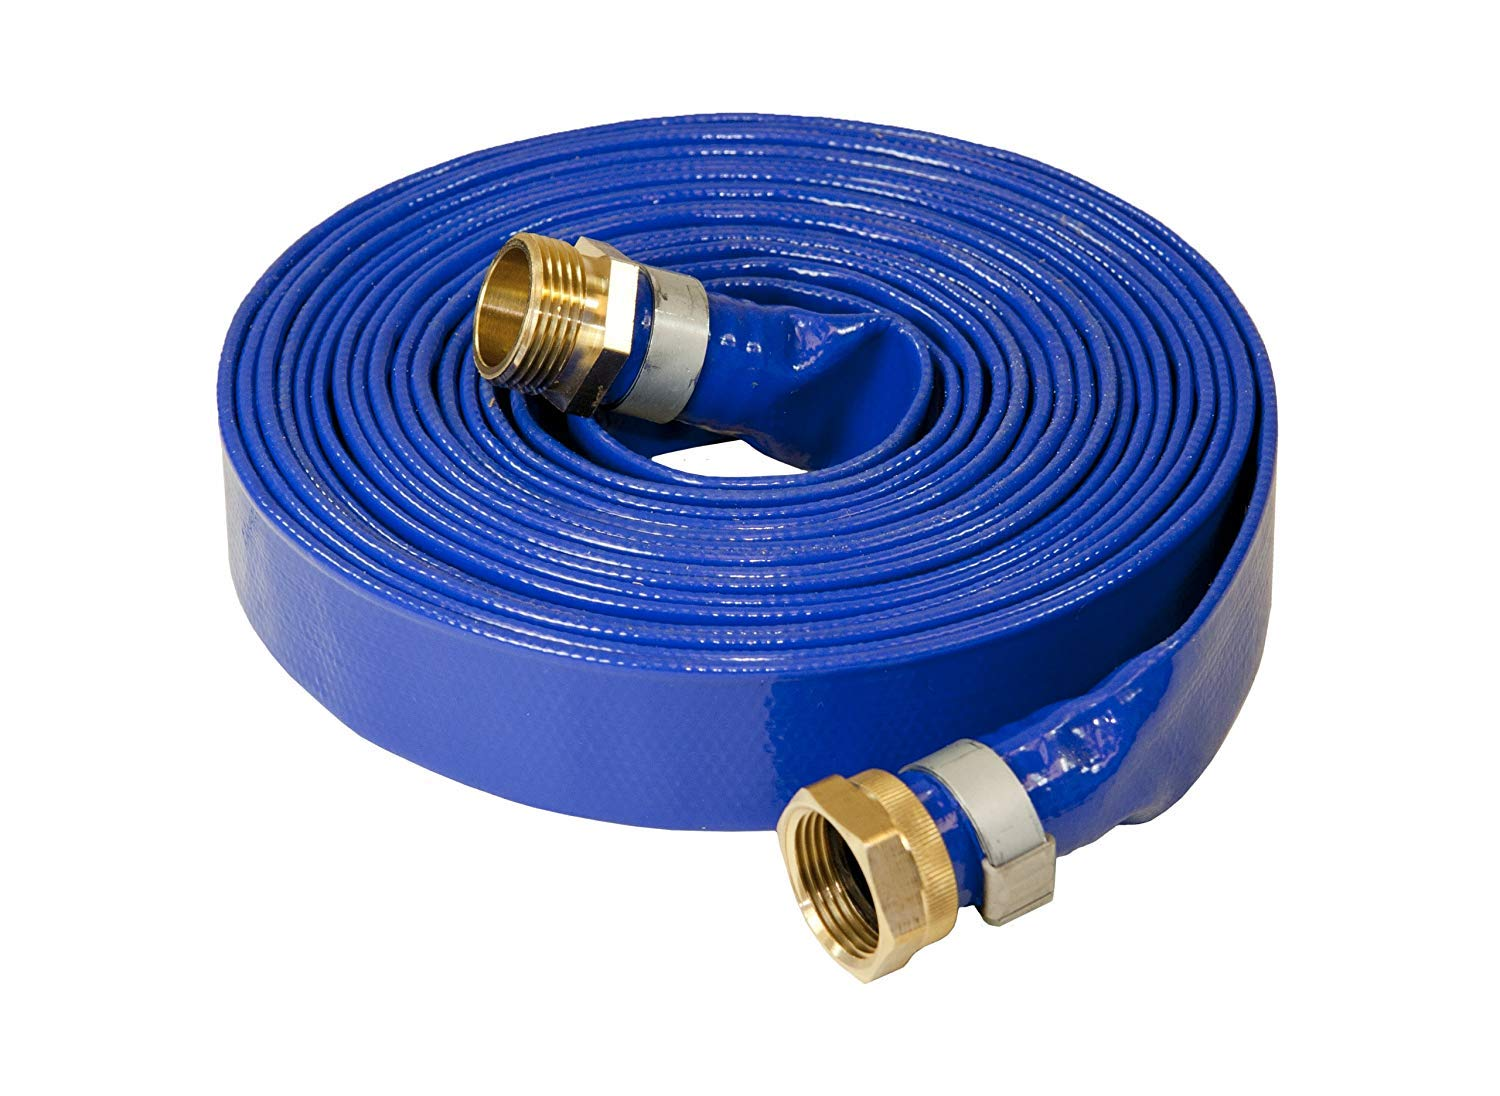 Stanios 4502-1000 Reinforced Blue PVC Lay Flat 1-Inch Water Discharge Hose with 1-Inch Threaded Couplings (25 Feet) by Stanios Industrial